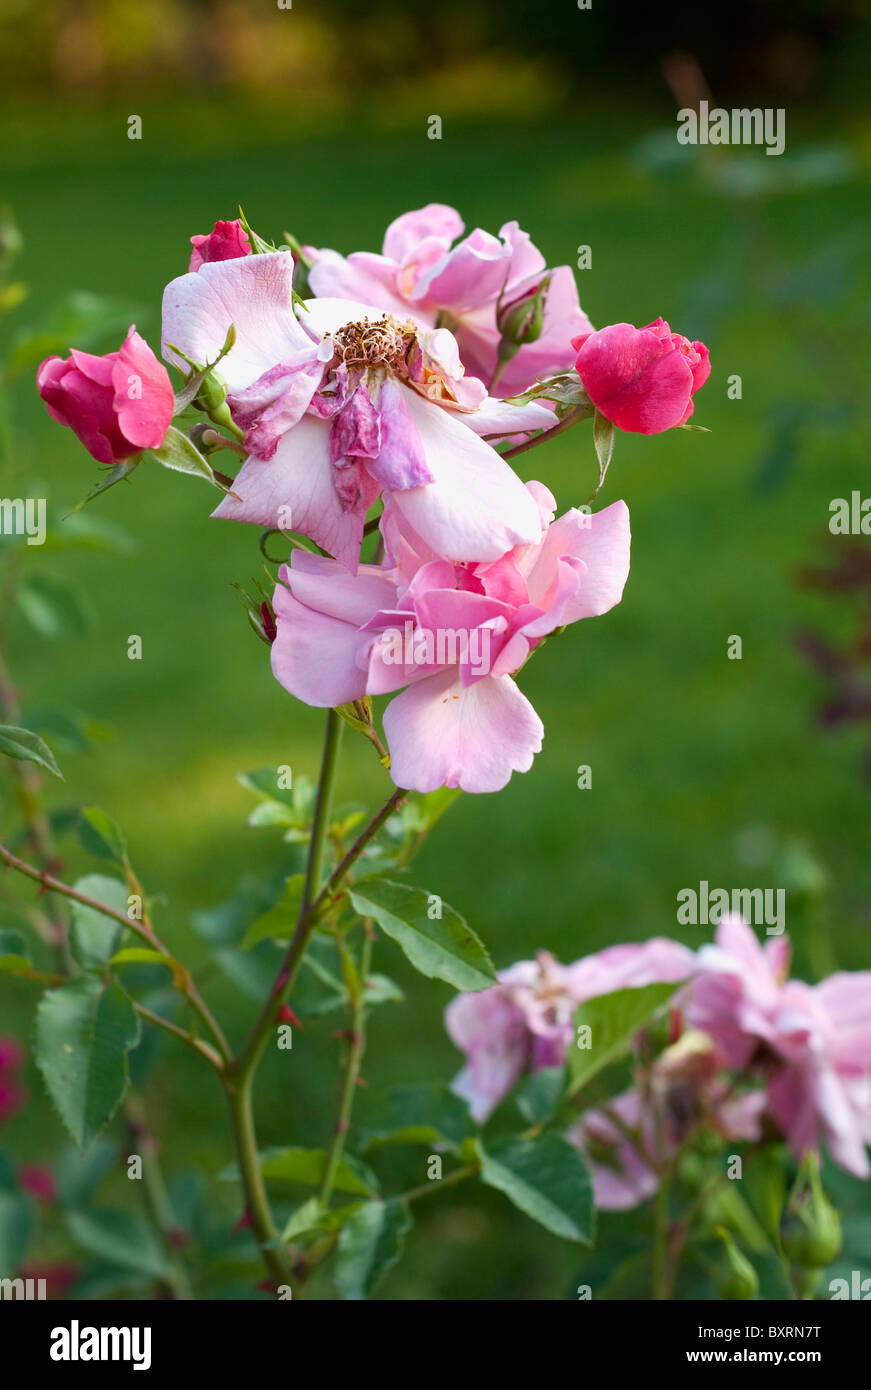 Withered rosy rose in a garden on a green grass background - Stock Image